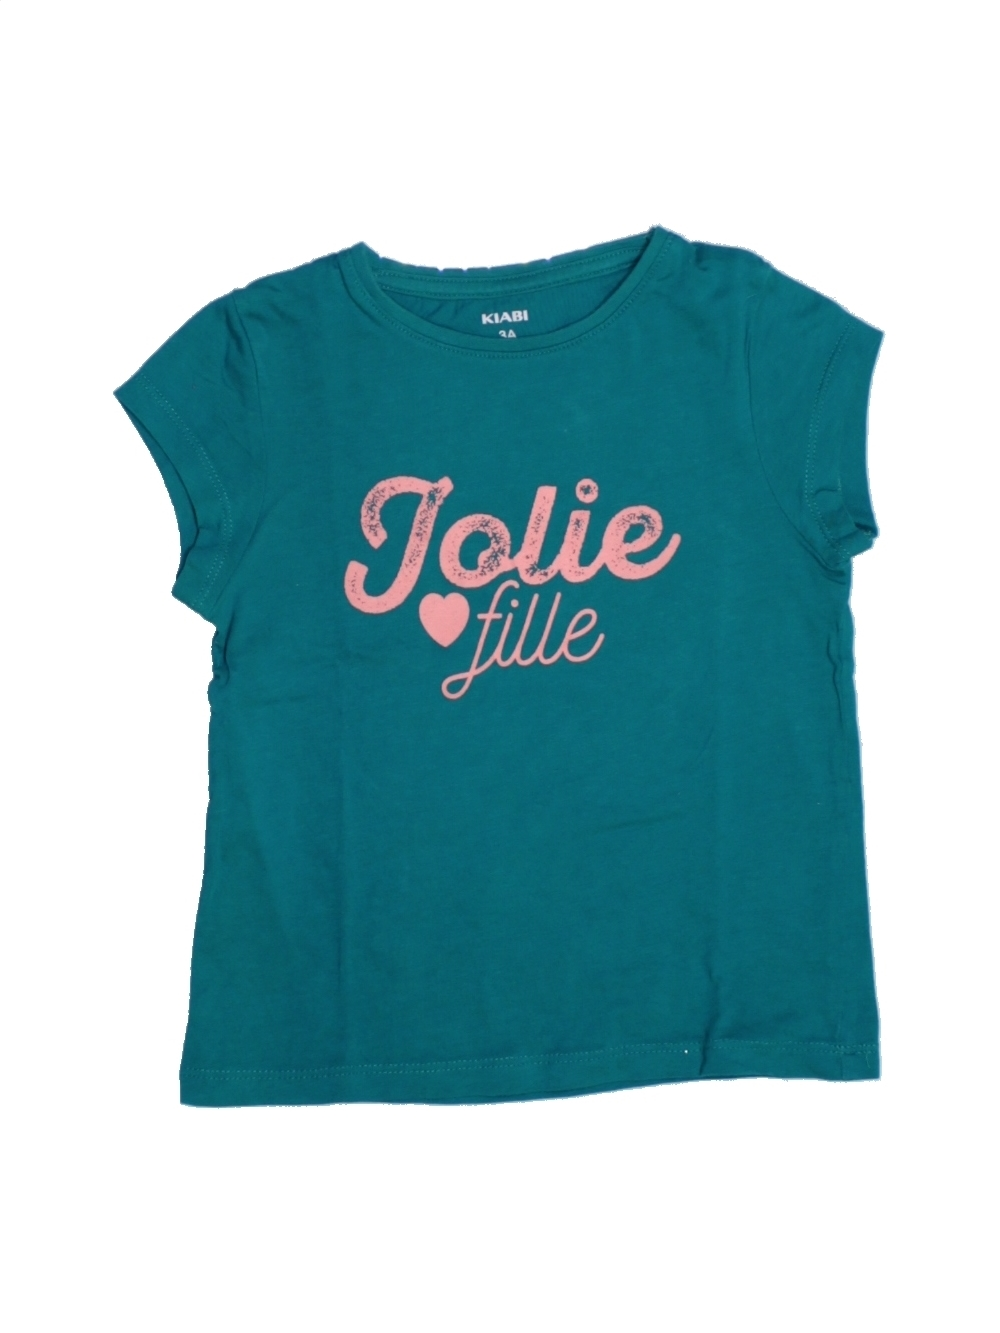 39e106eee6754 t shirt fille 3 ans - www.goldpoint.be